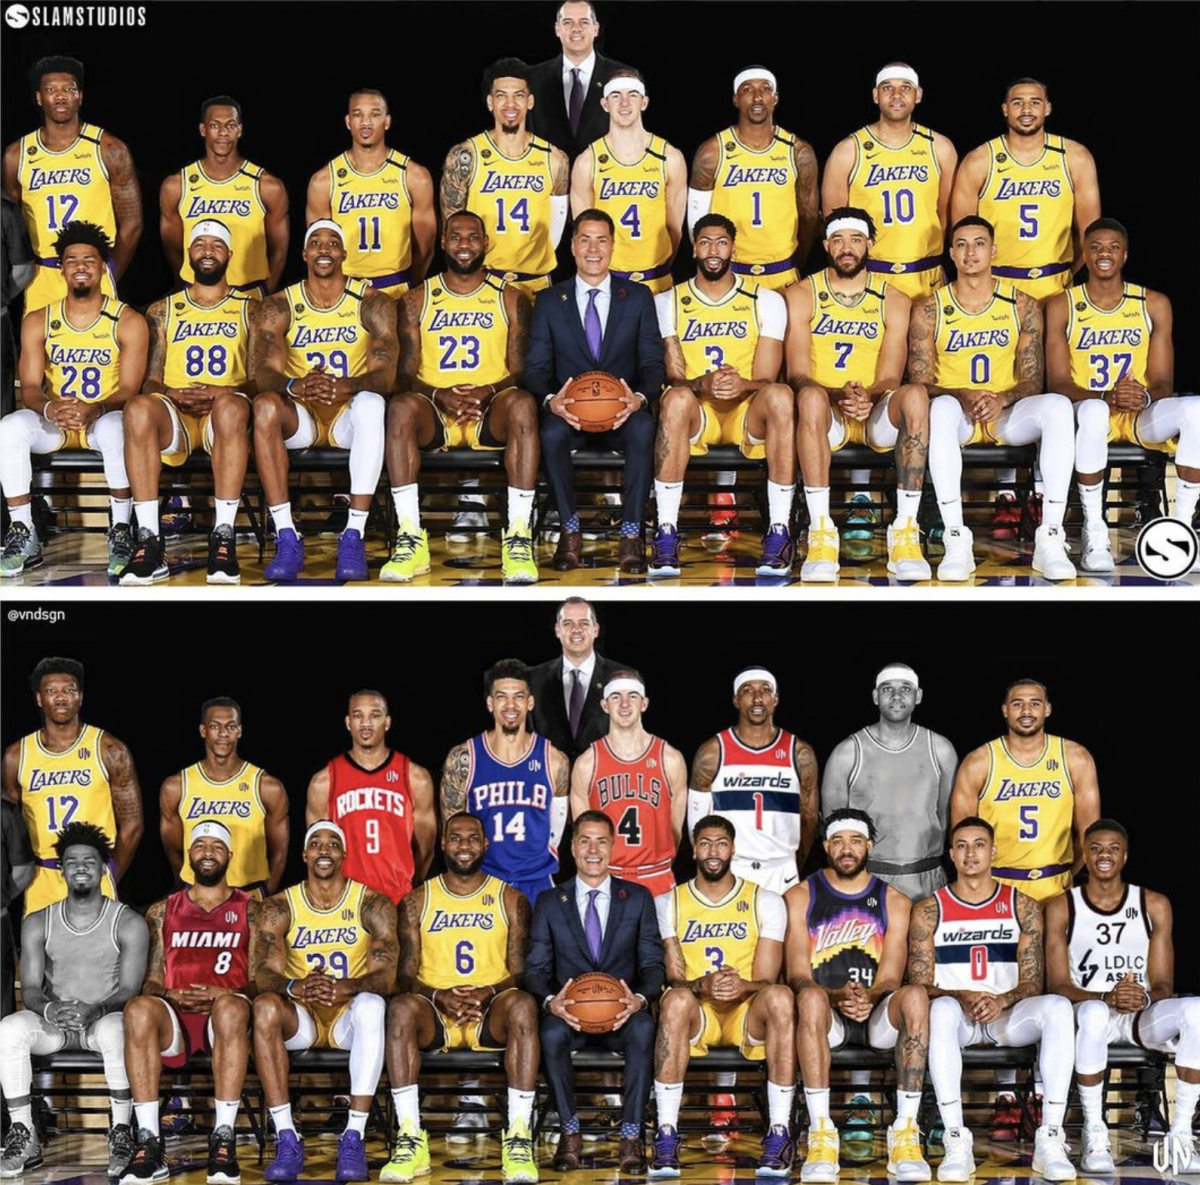 How The 2020 NBA Champions Los Angeles Lakers Look Today: Only 6 Players Are With The Lakers Now